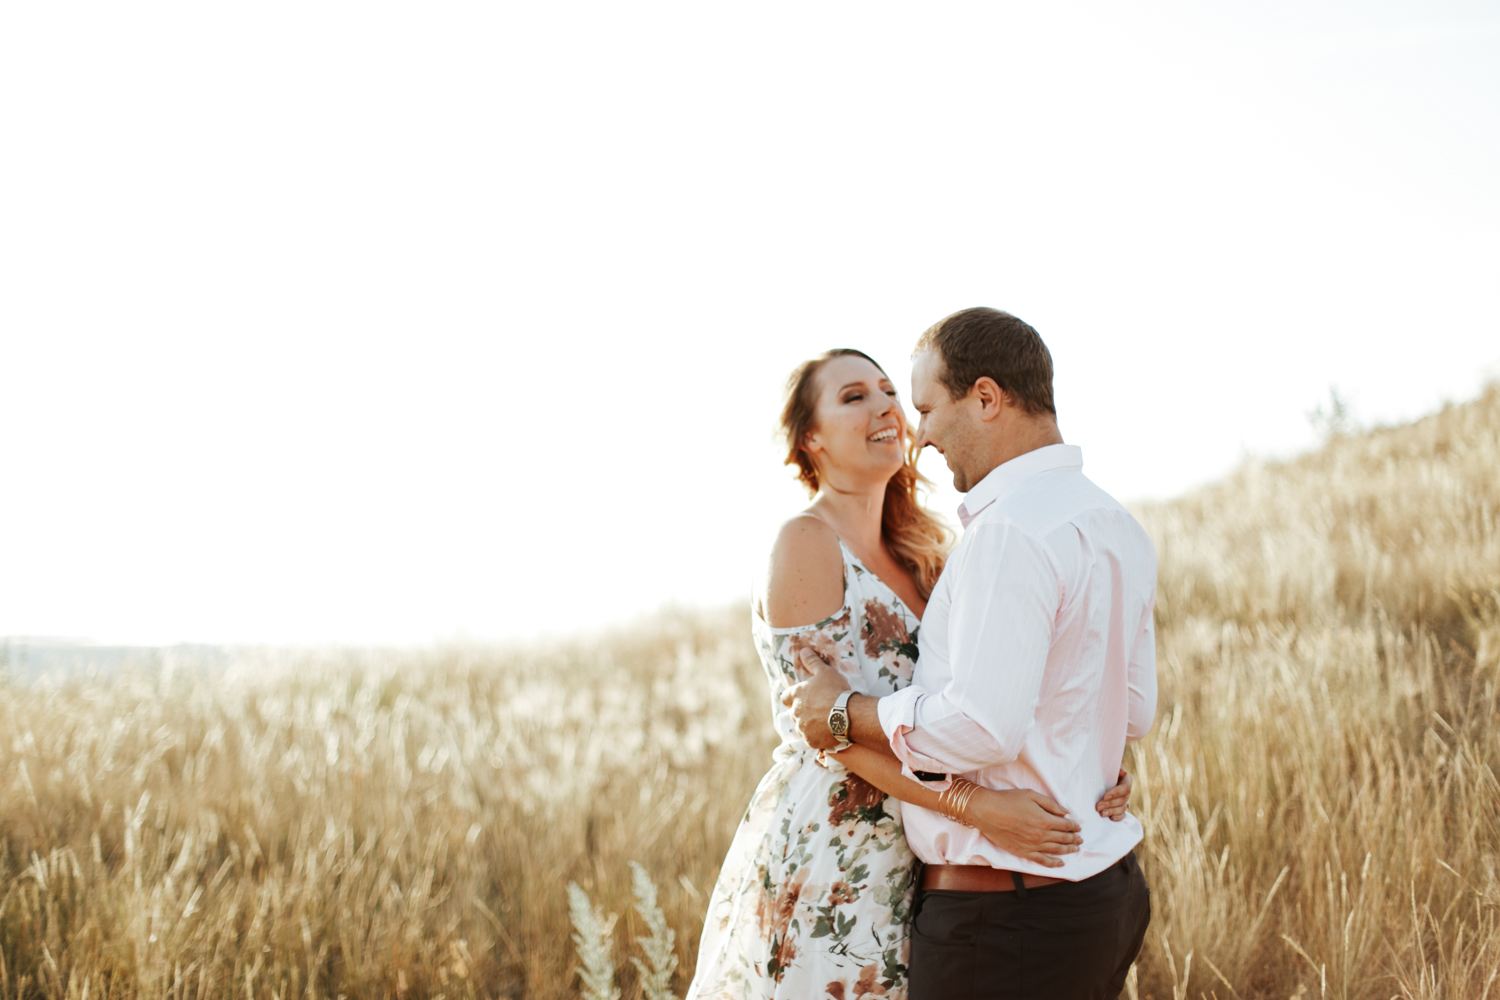 lethbridge-wedding-photographer-love-and-be-loved-photography-katie-kelli-engagement-picture-image-photo-10.jpg